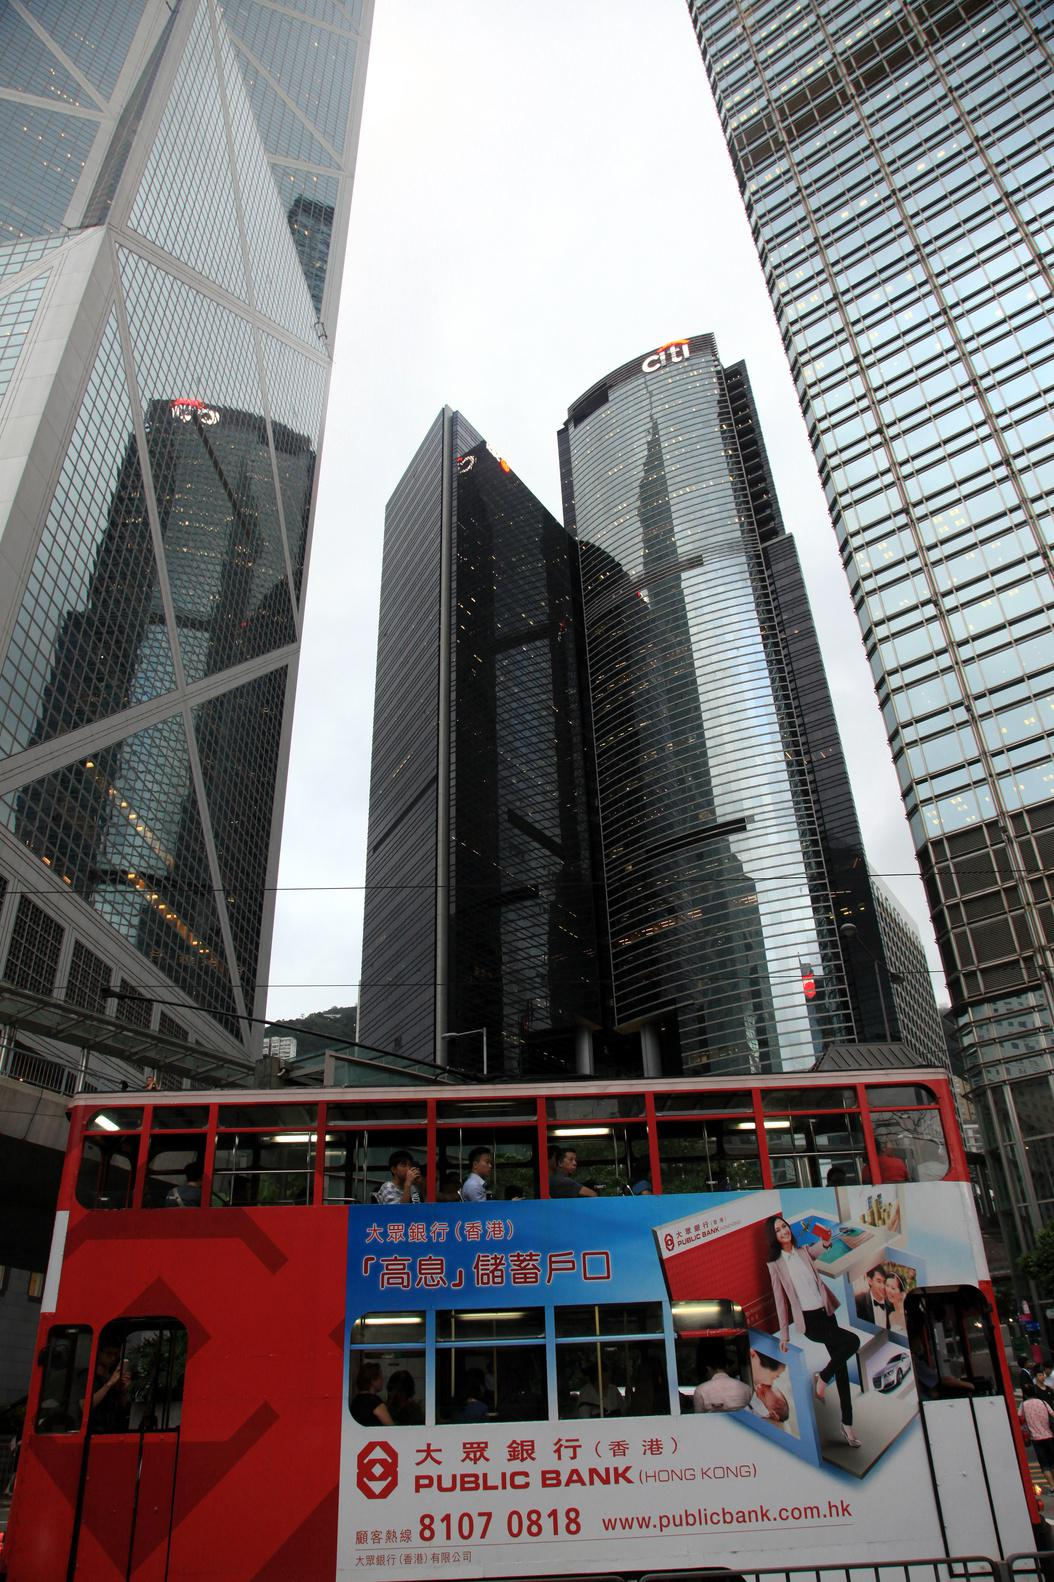 China's Property Market At The Brink: Not A Lehman Moment But An Economic Threat